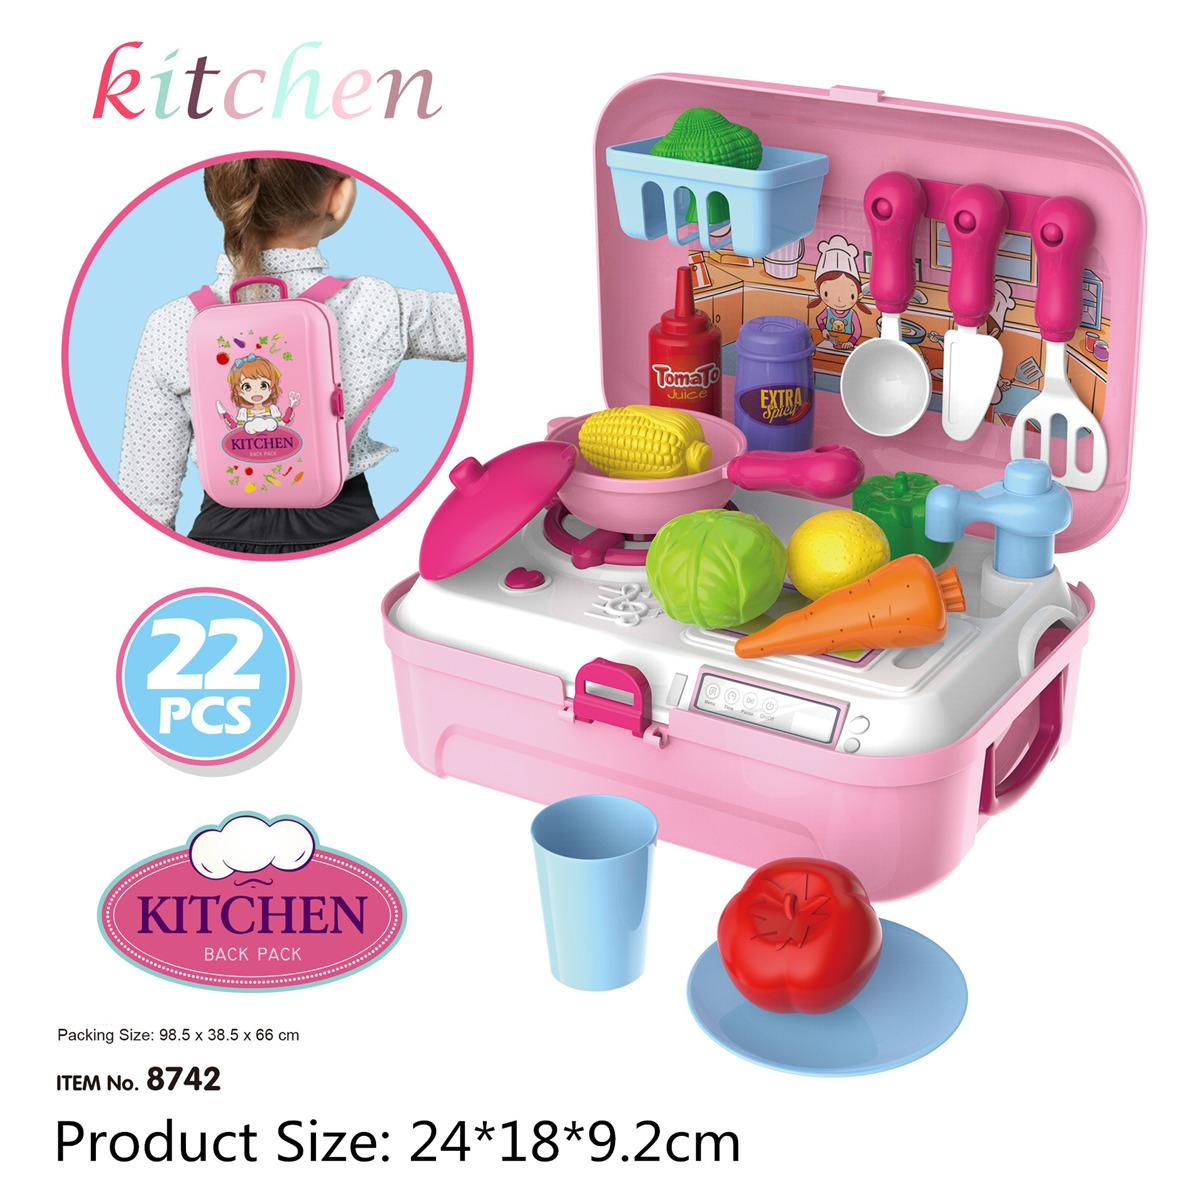 candy online backpack play toys set kitchen cooking supermarket tools make  up